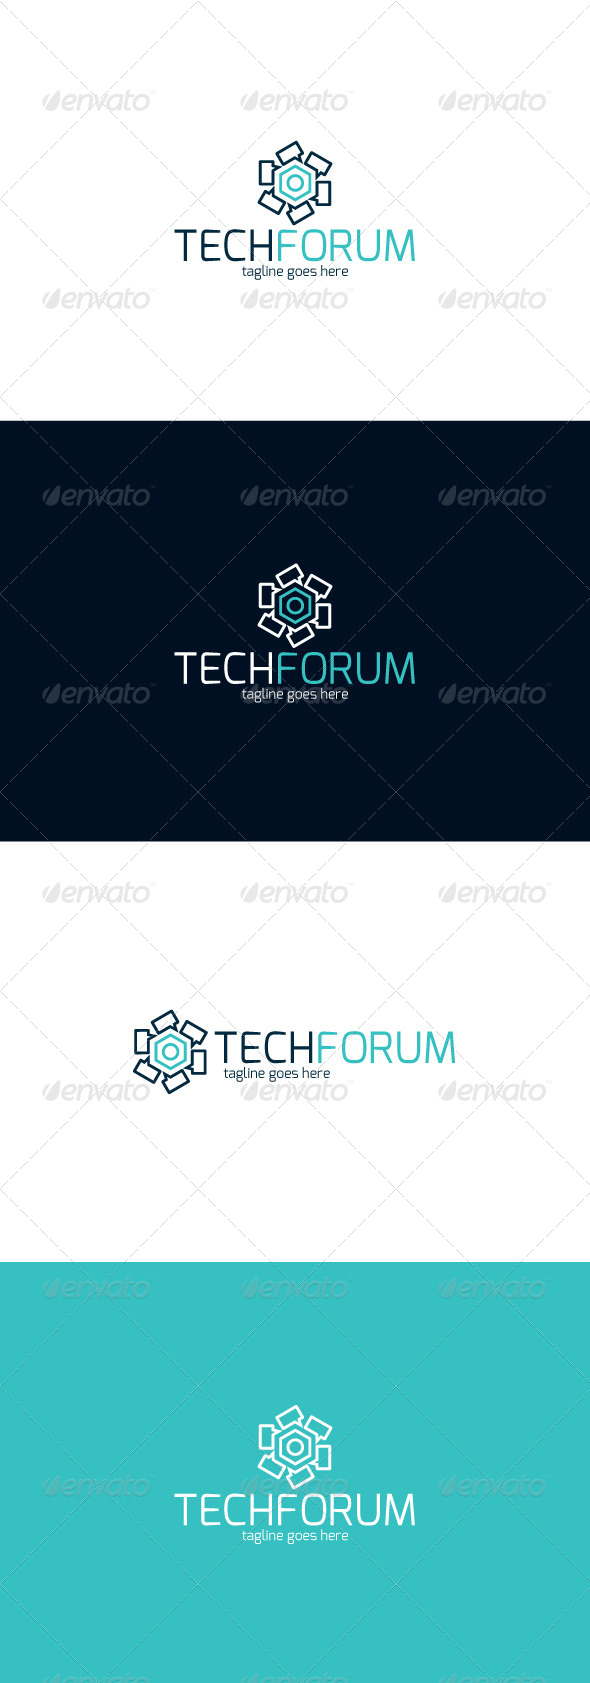 GraphicRiver Tech Forum Logo 8498449